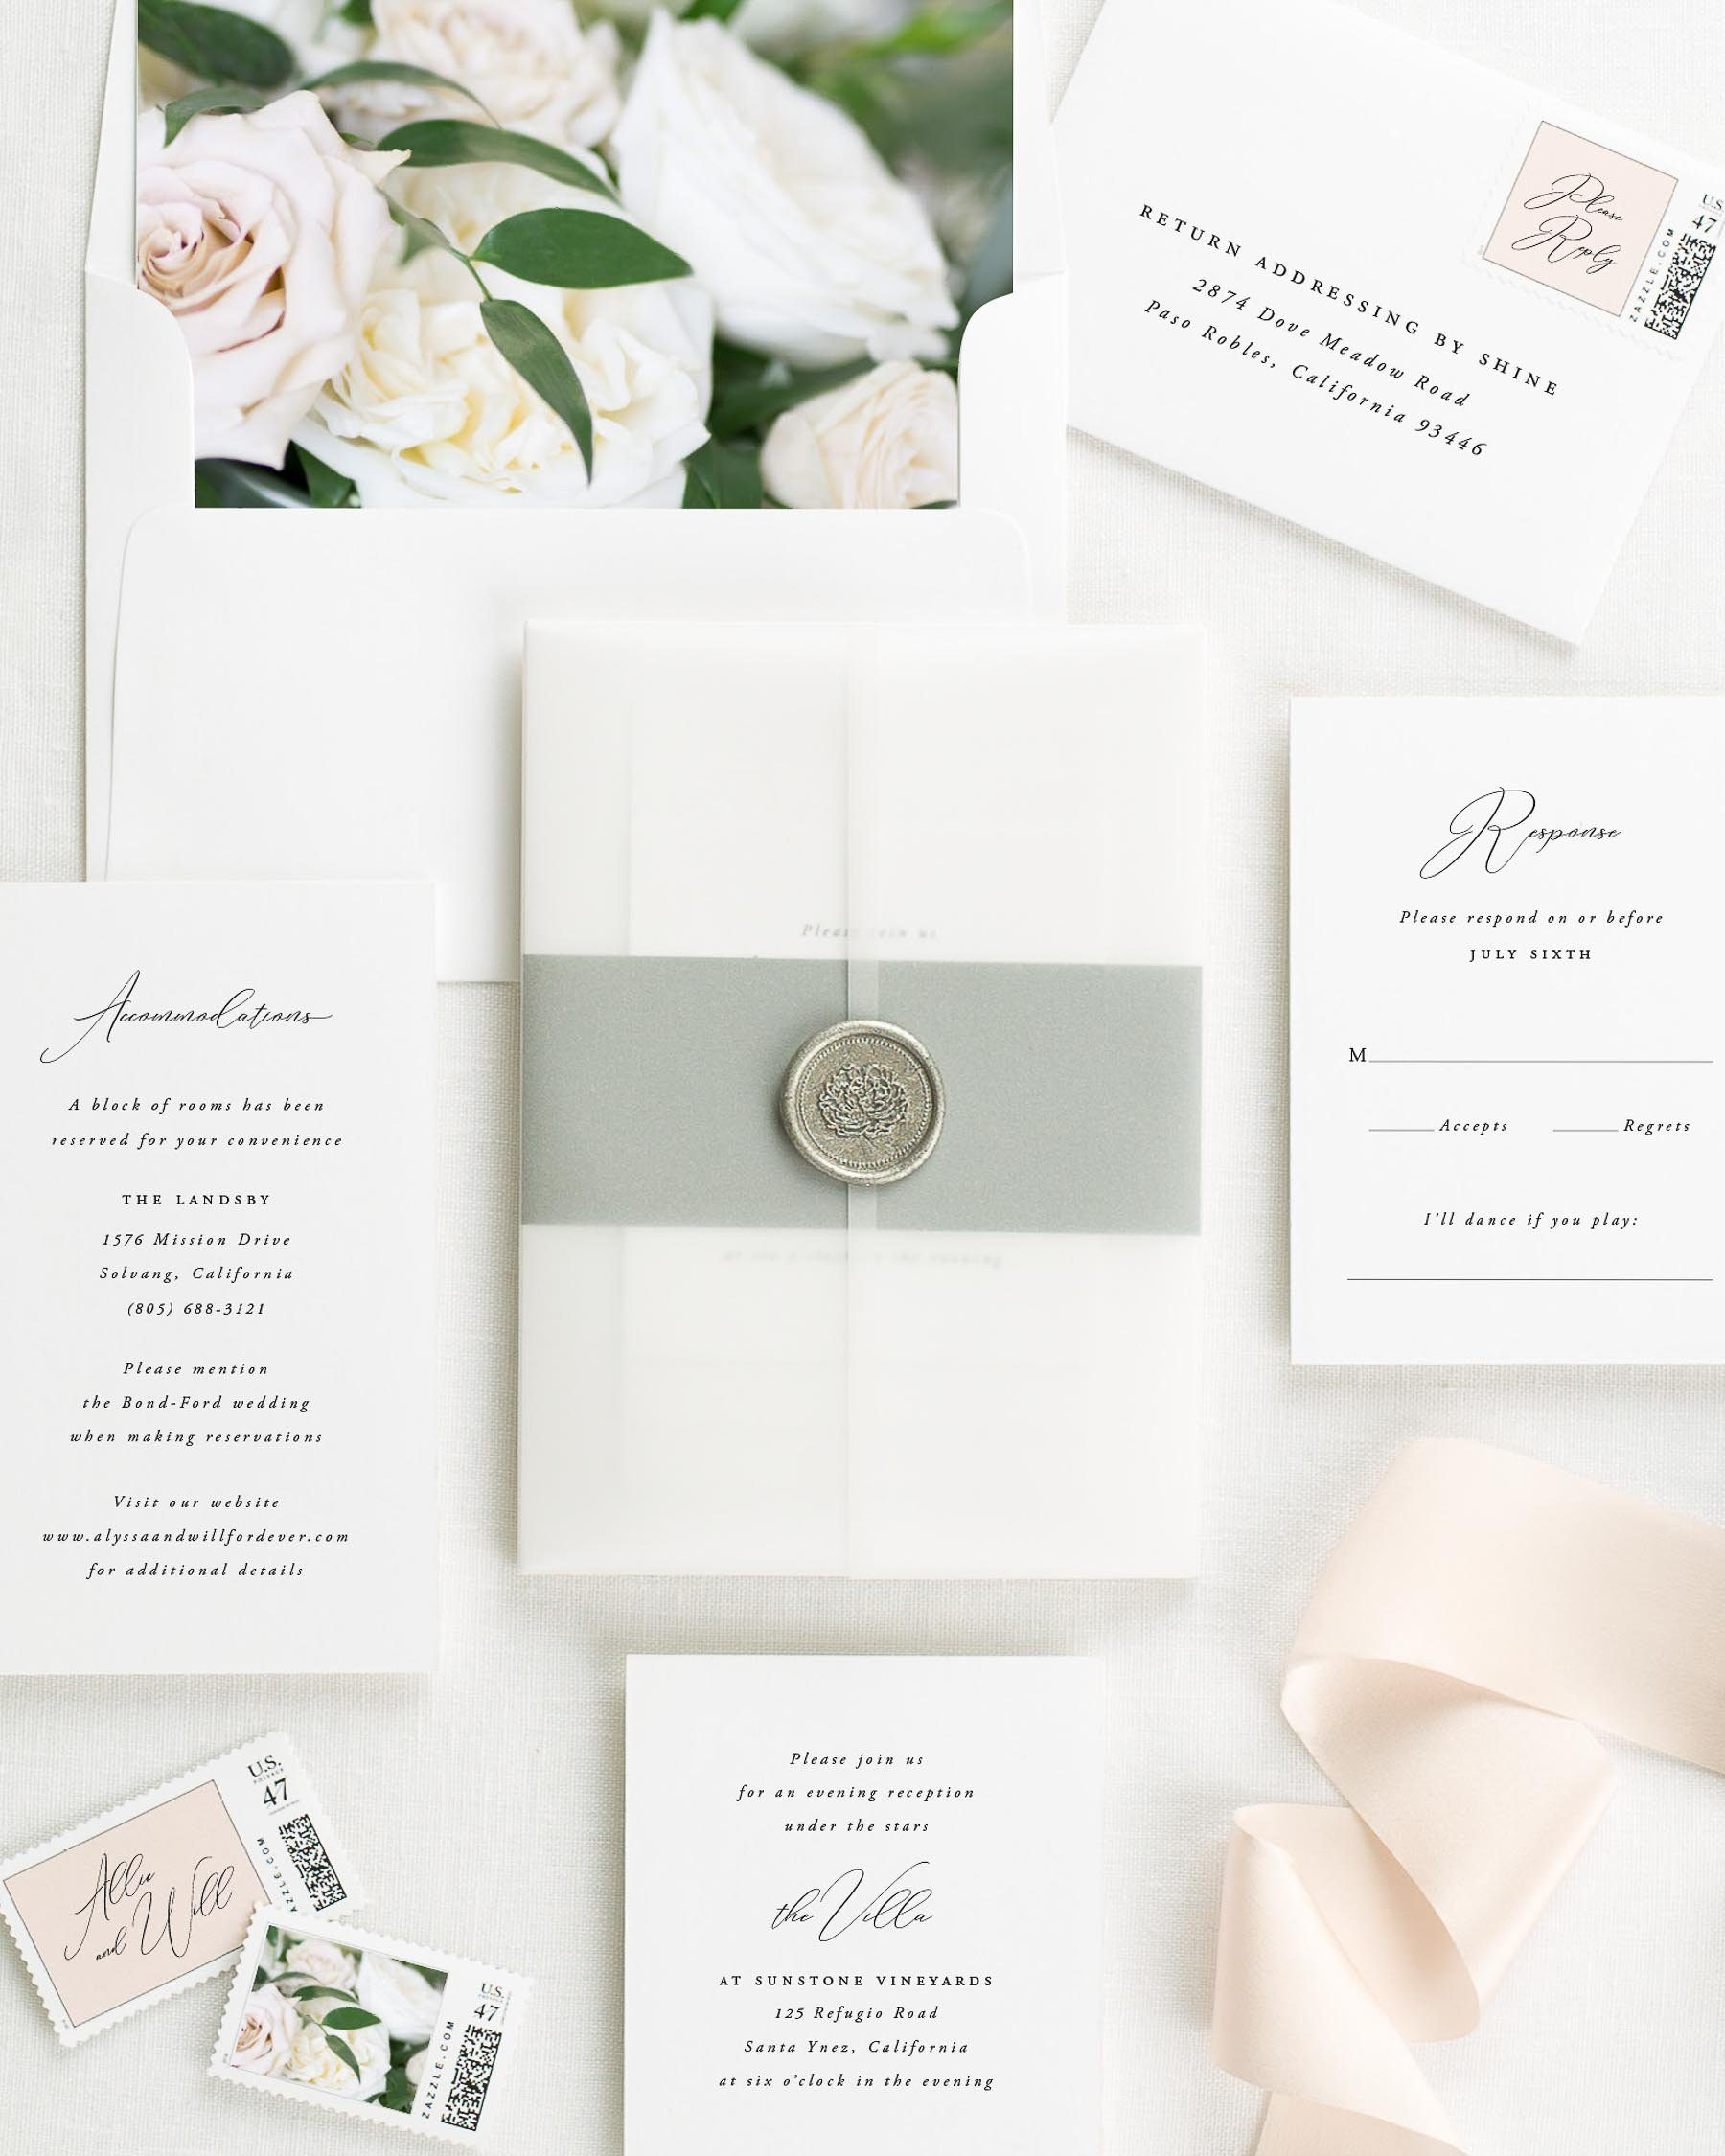 Alyssa Floral Wedding Invitations - Floral Wedding Invitations by Shine